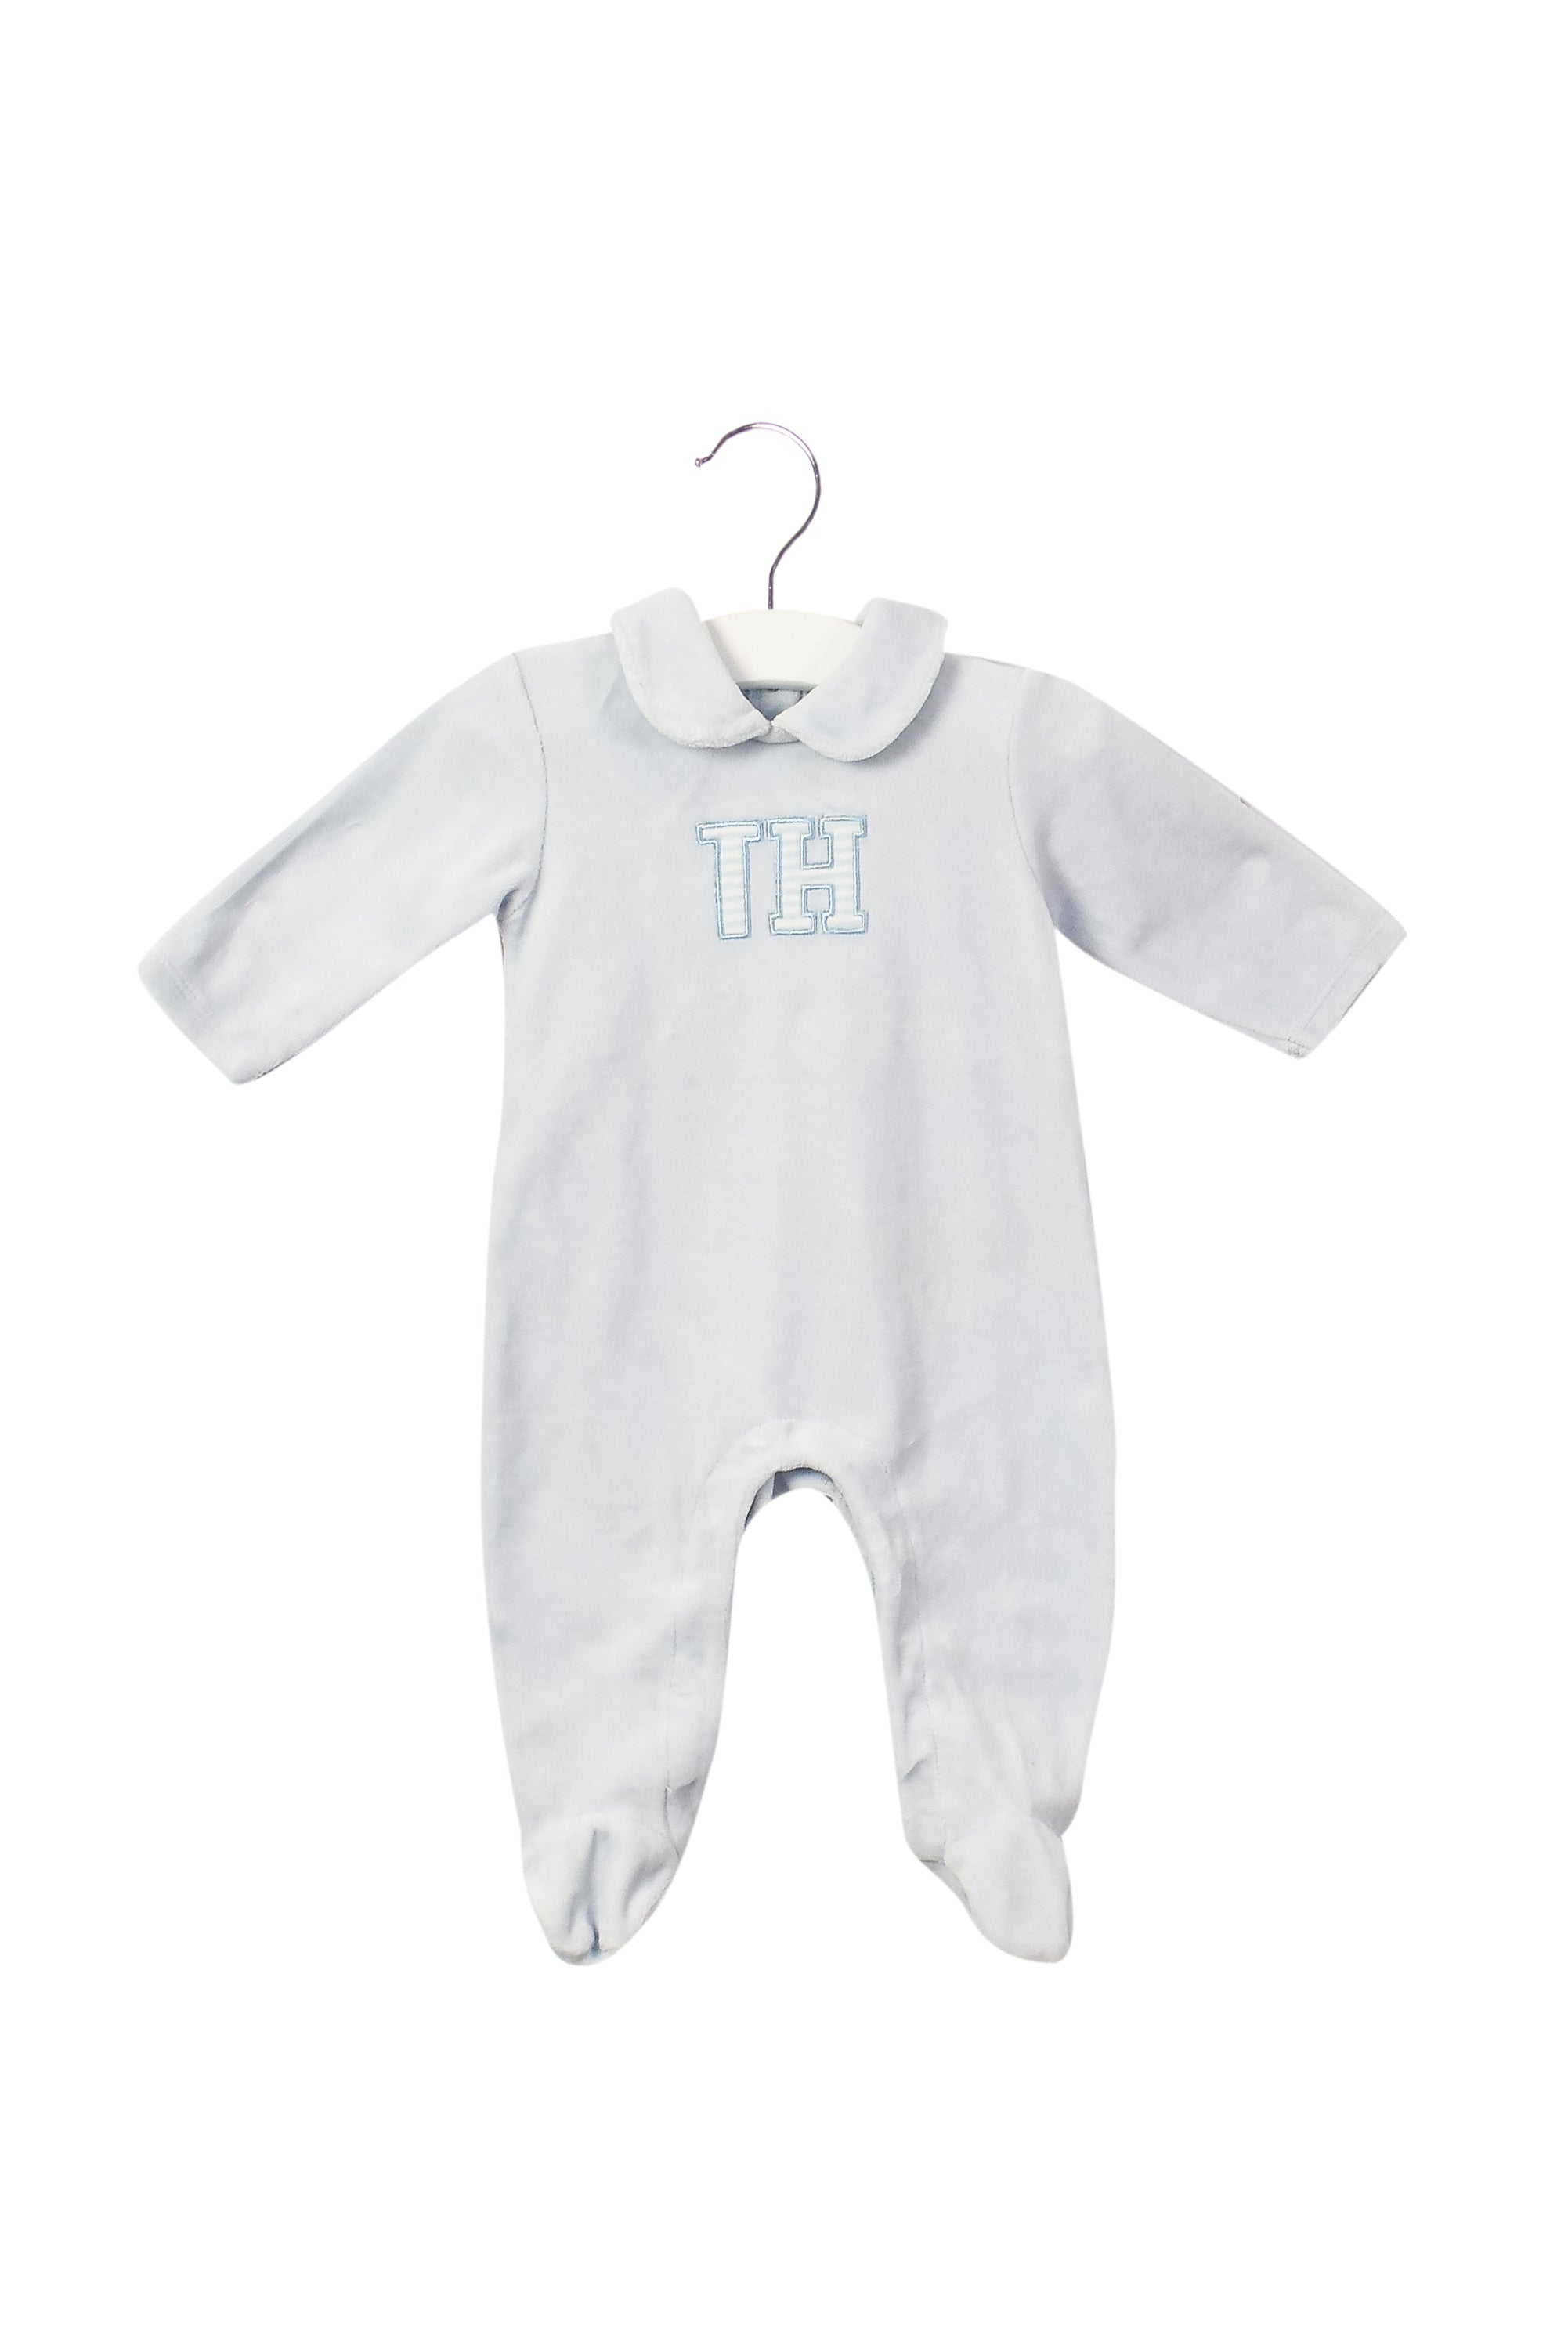 10033587 Tommy Hilfiger Baby~Jumpsuit 0-3M at Retykle